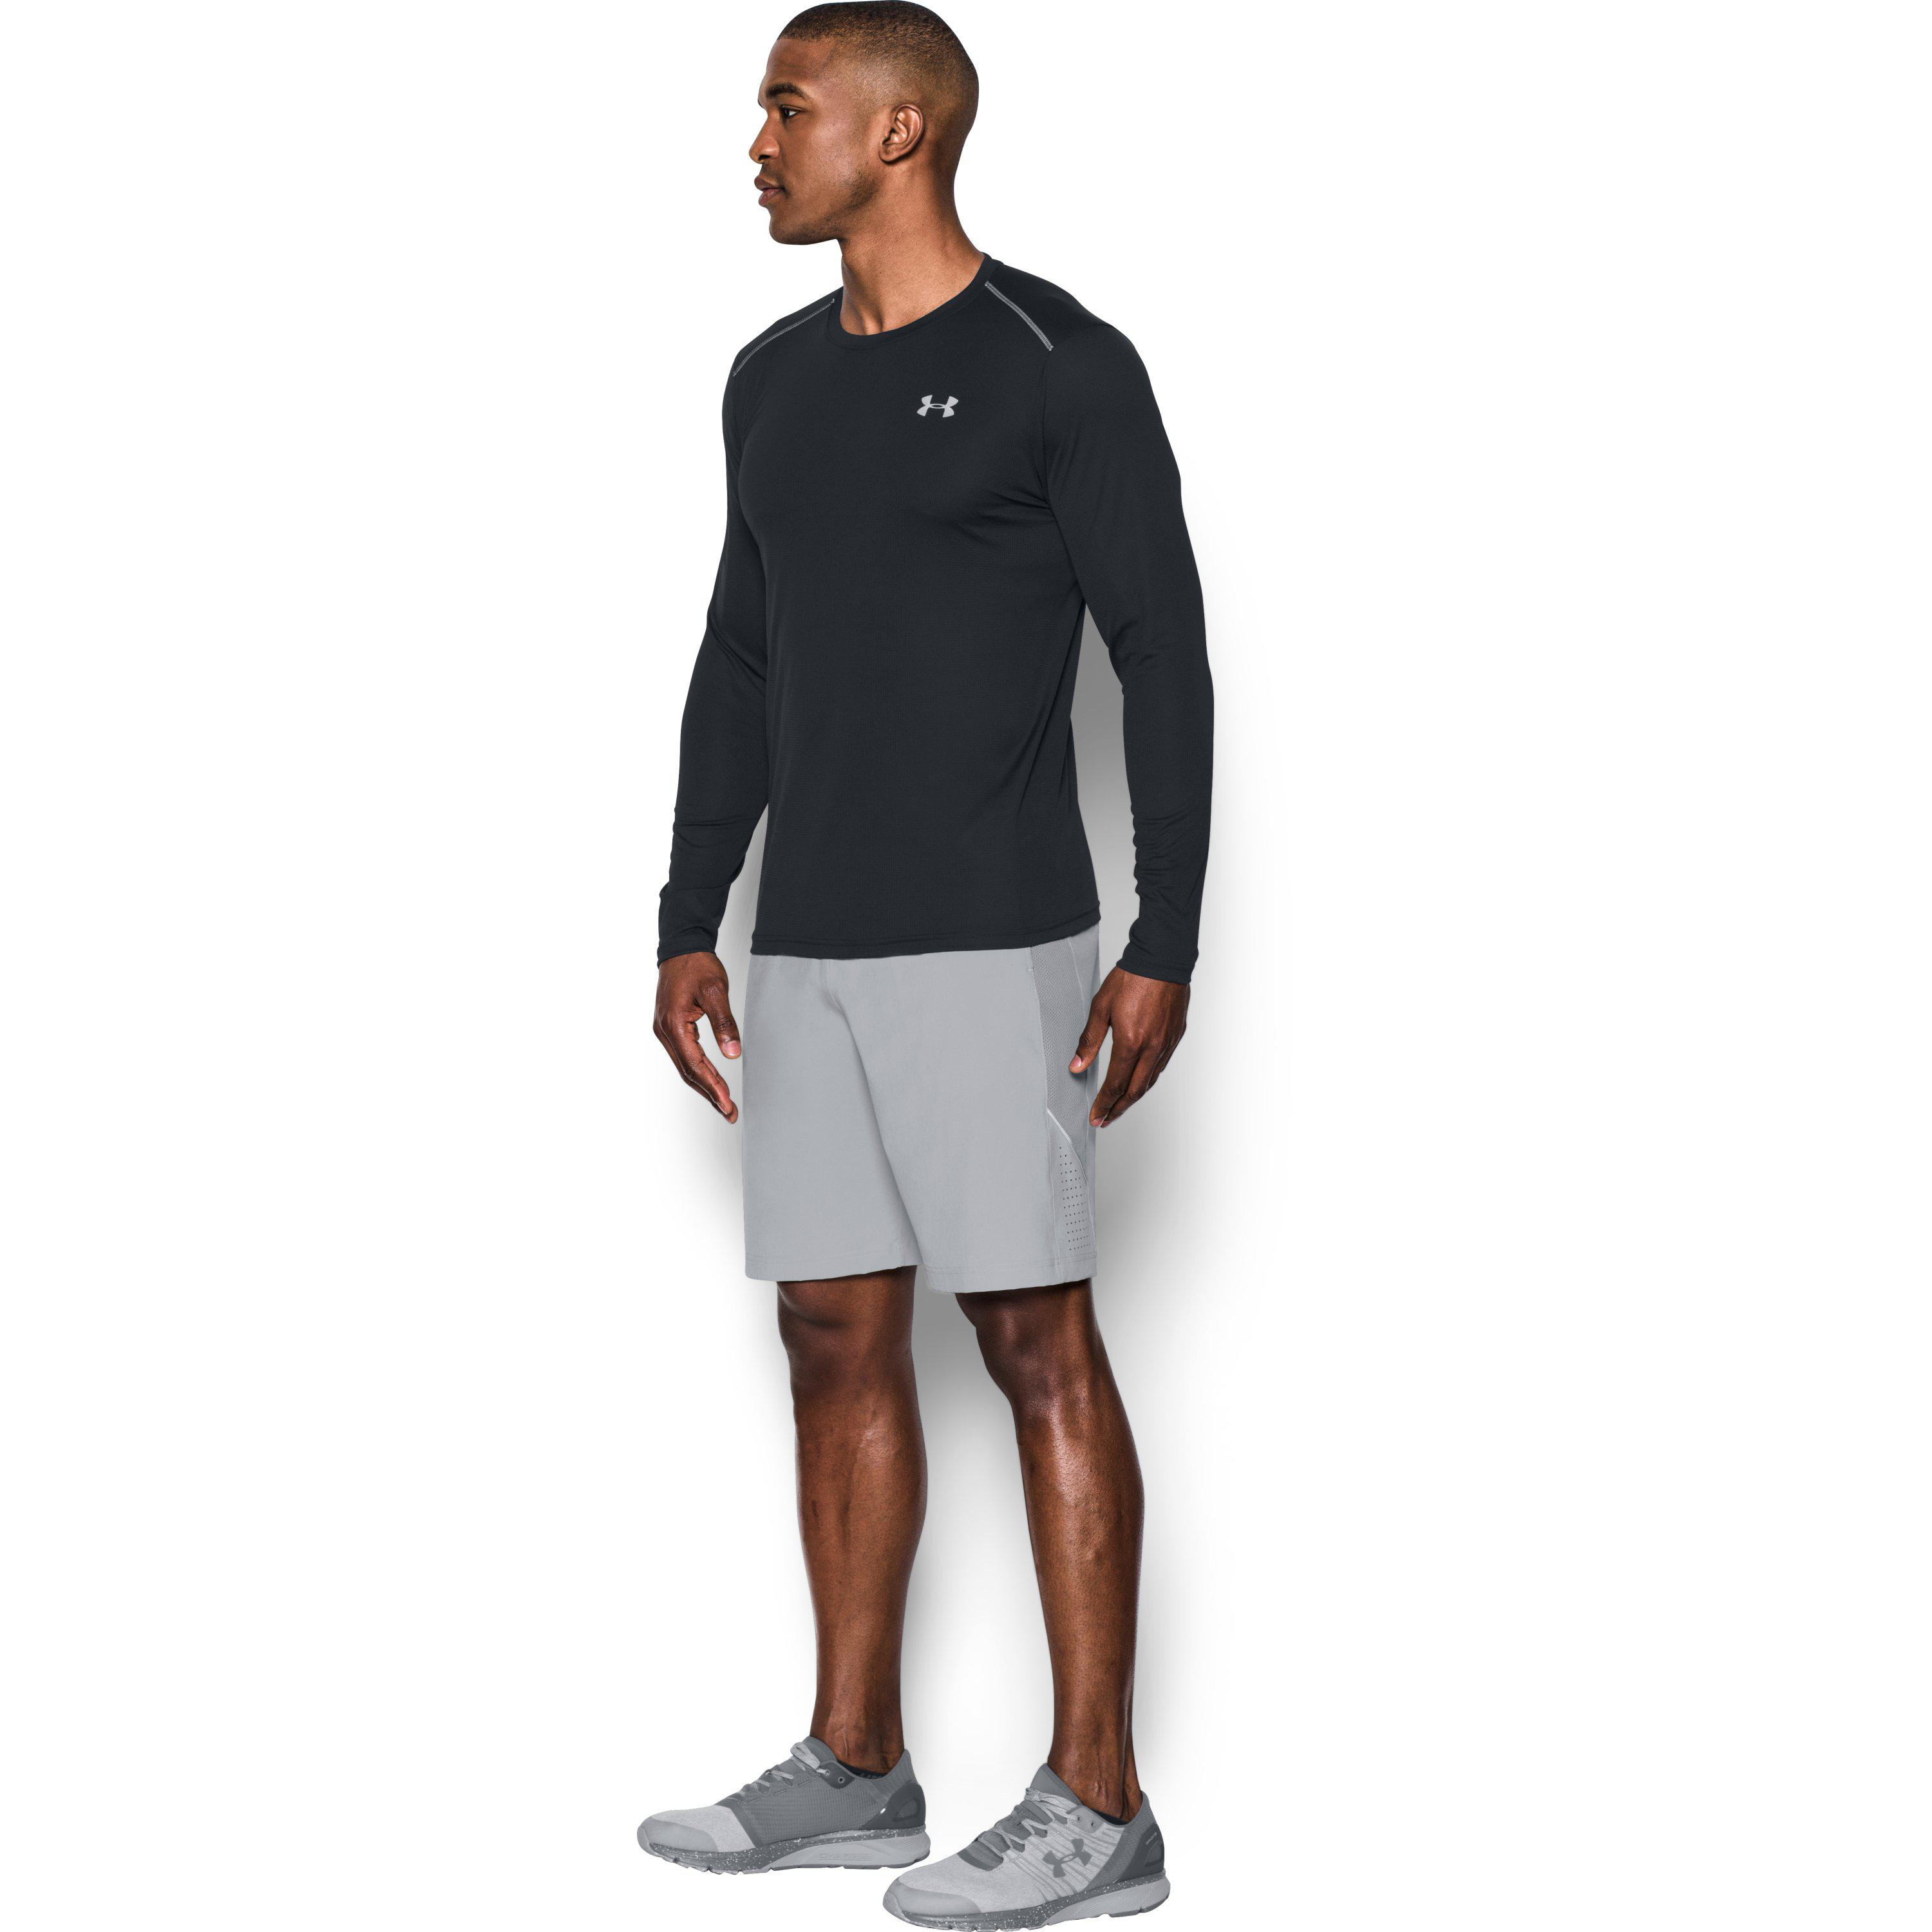 9bac88cc36 Lyst - Under Armour Men's Ua Coolswitch Run Long Sleeve in Black for Men